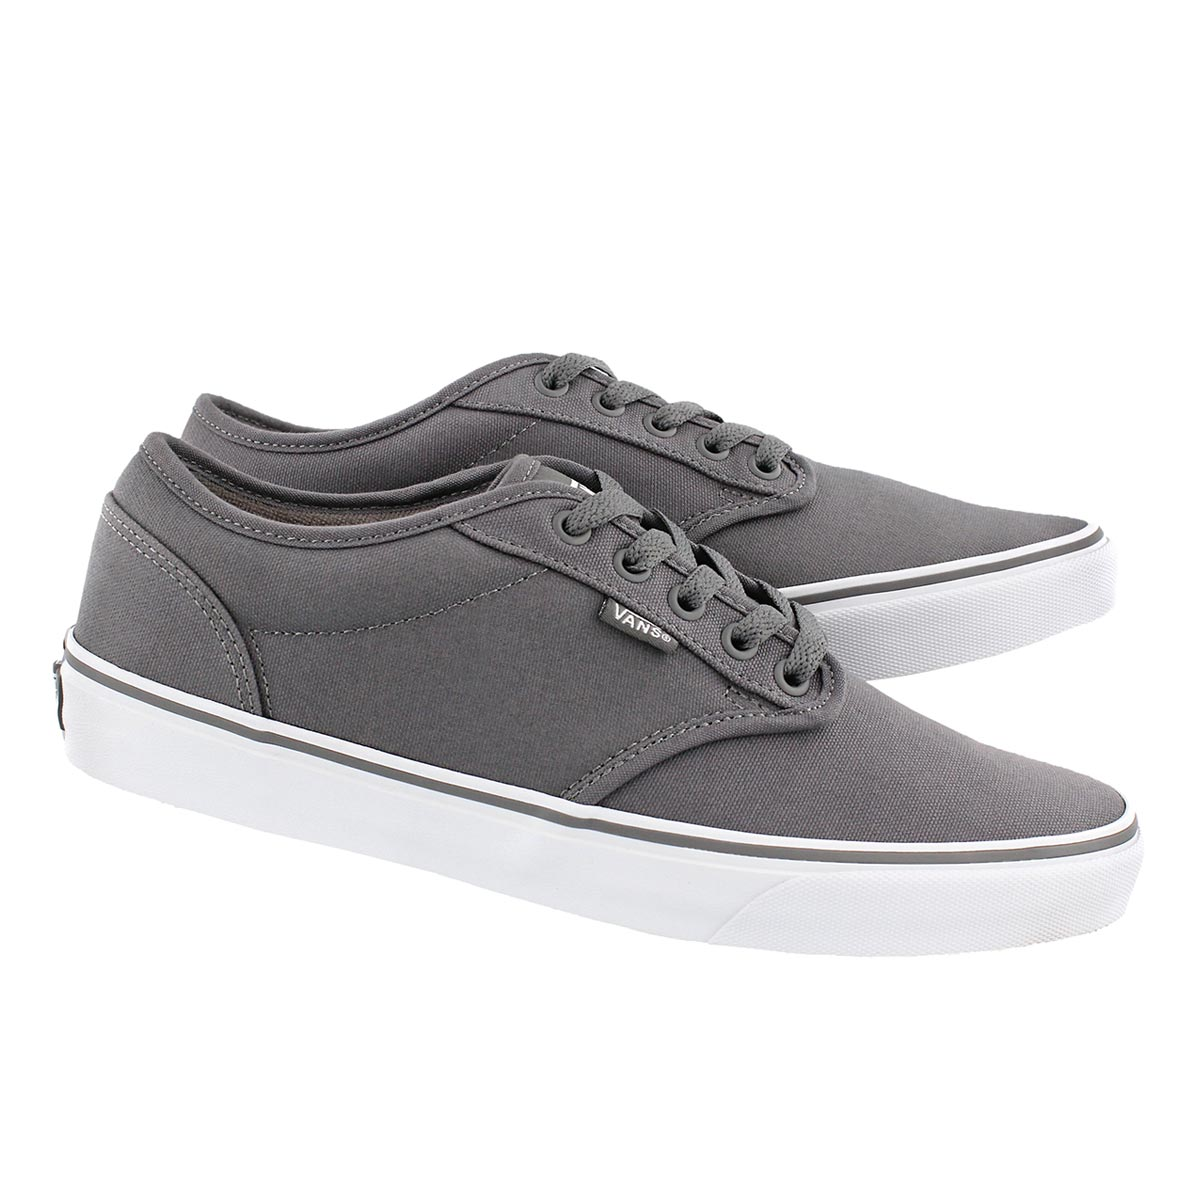 Mns Atwood pewter canvas laceup sneaker